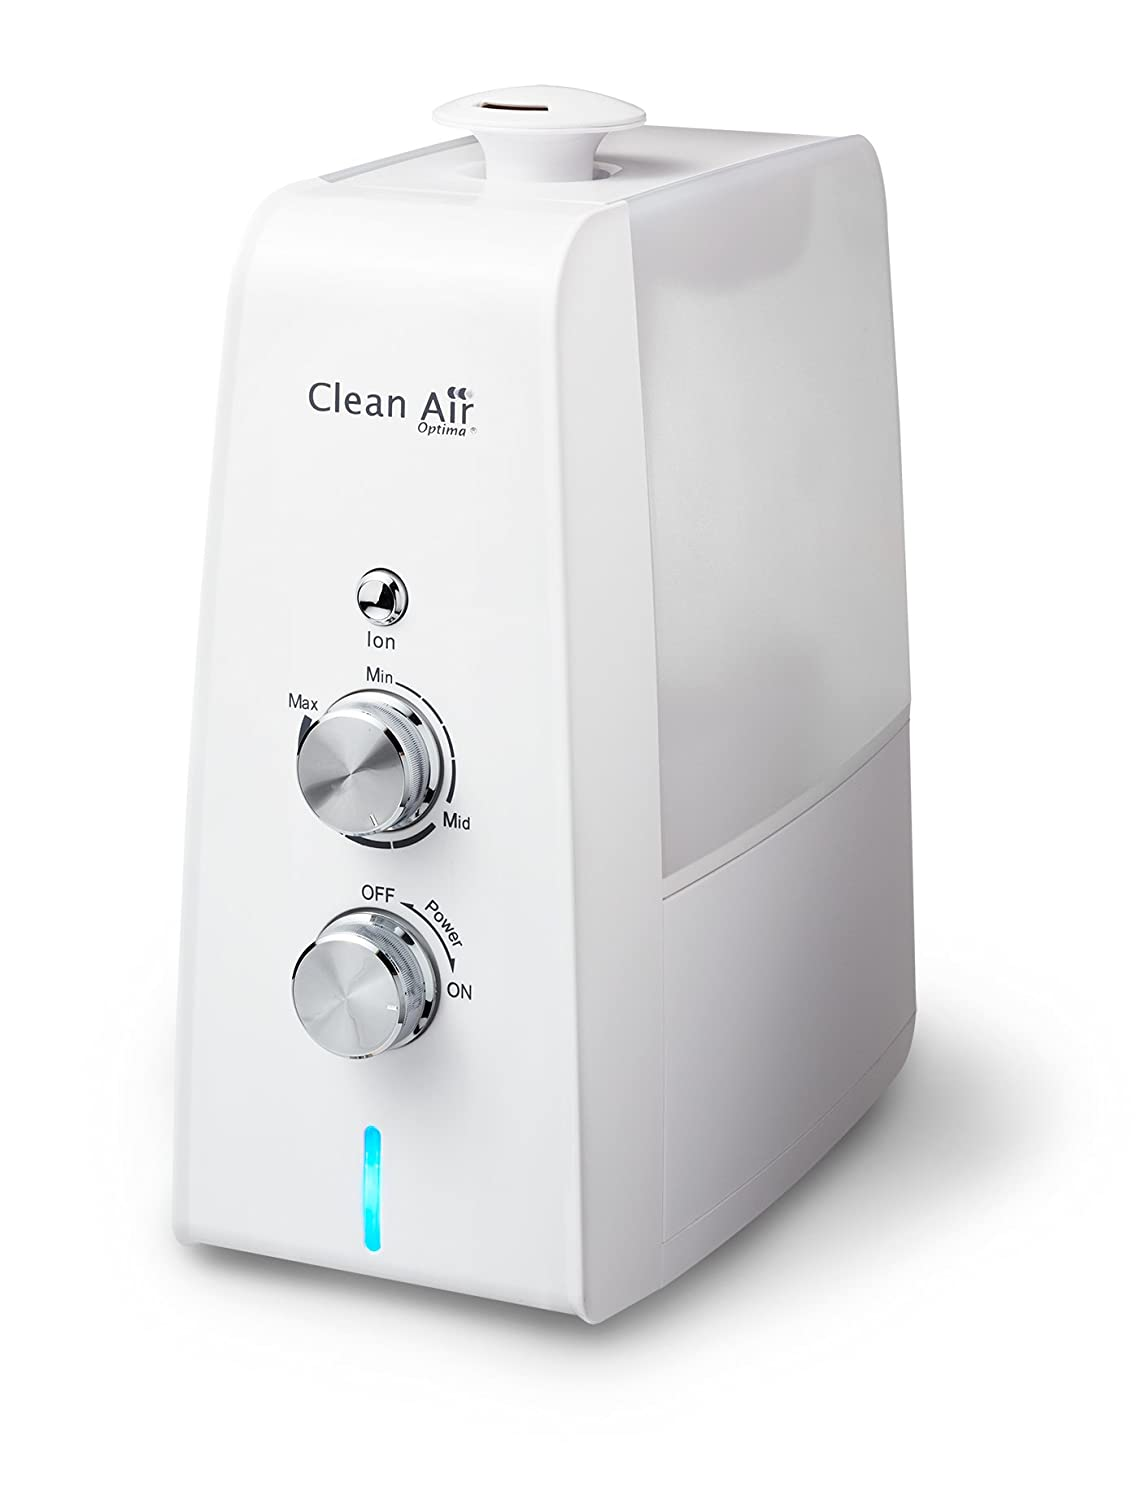 Humidifier with Ionizer CA-602 - Suitable 35m² - Ultrasonic Humidifier - Humidifier with Aromatherapy! Clean Air Optima